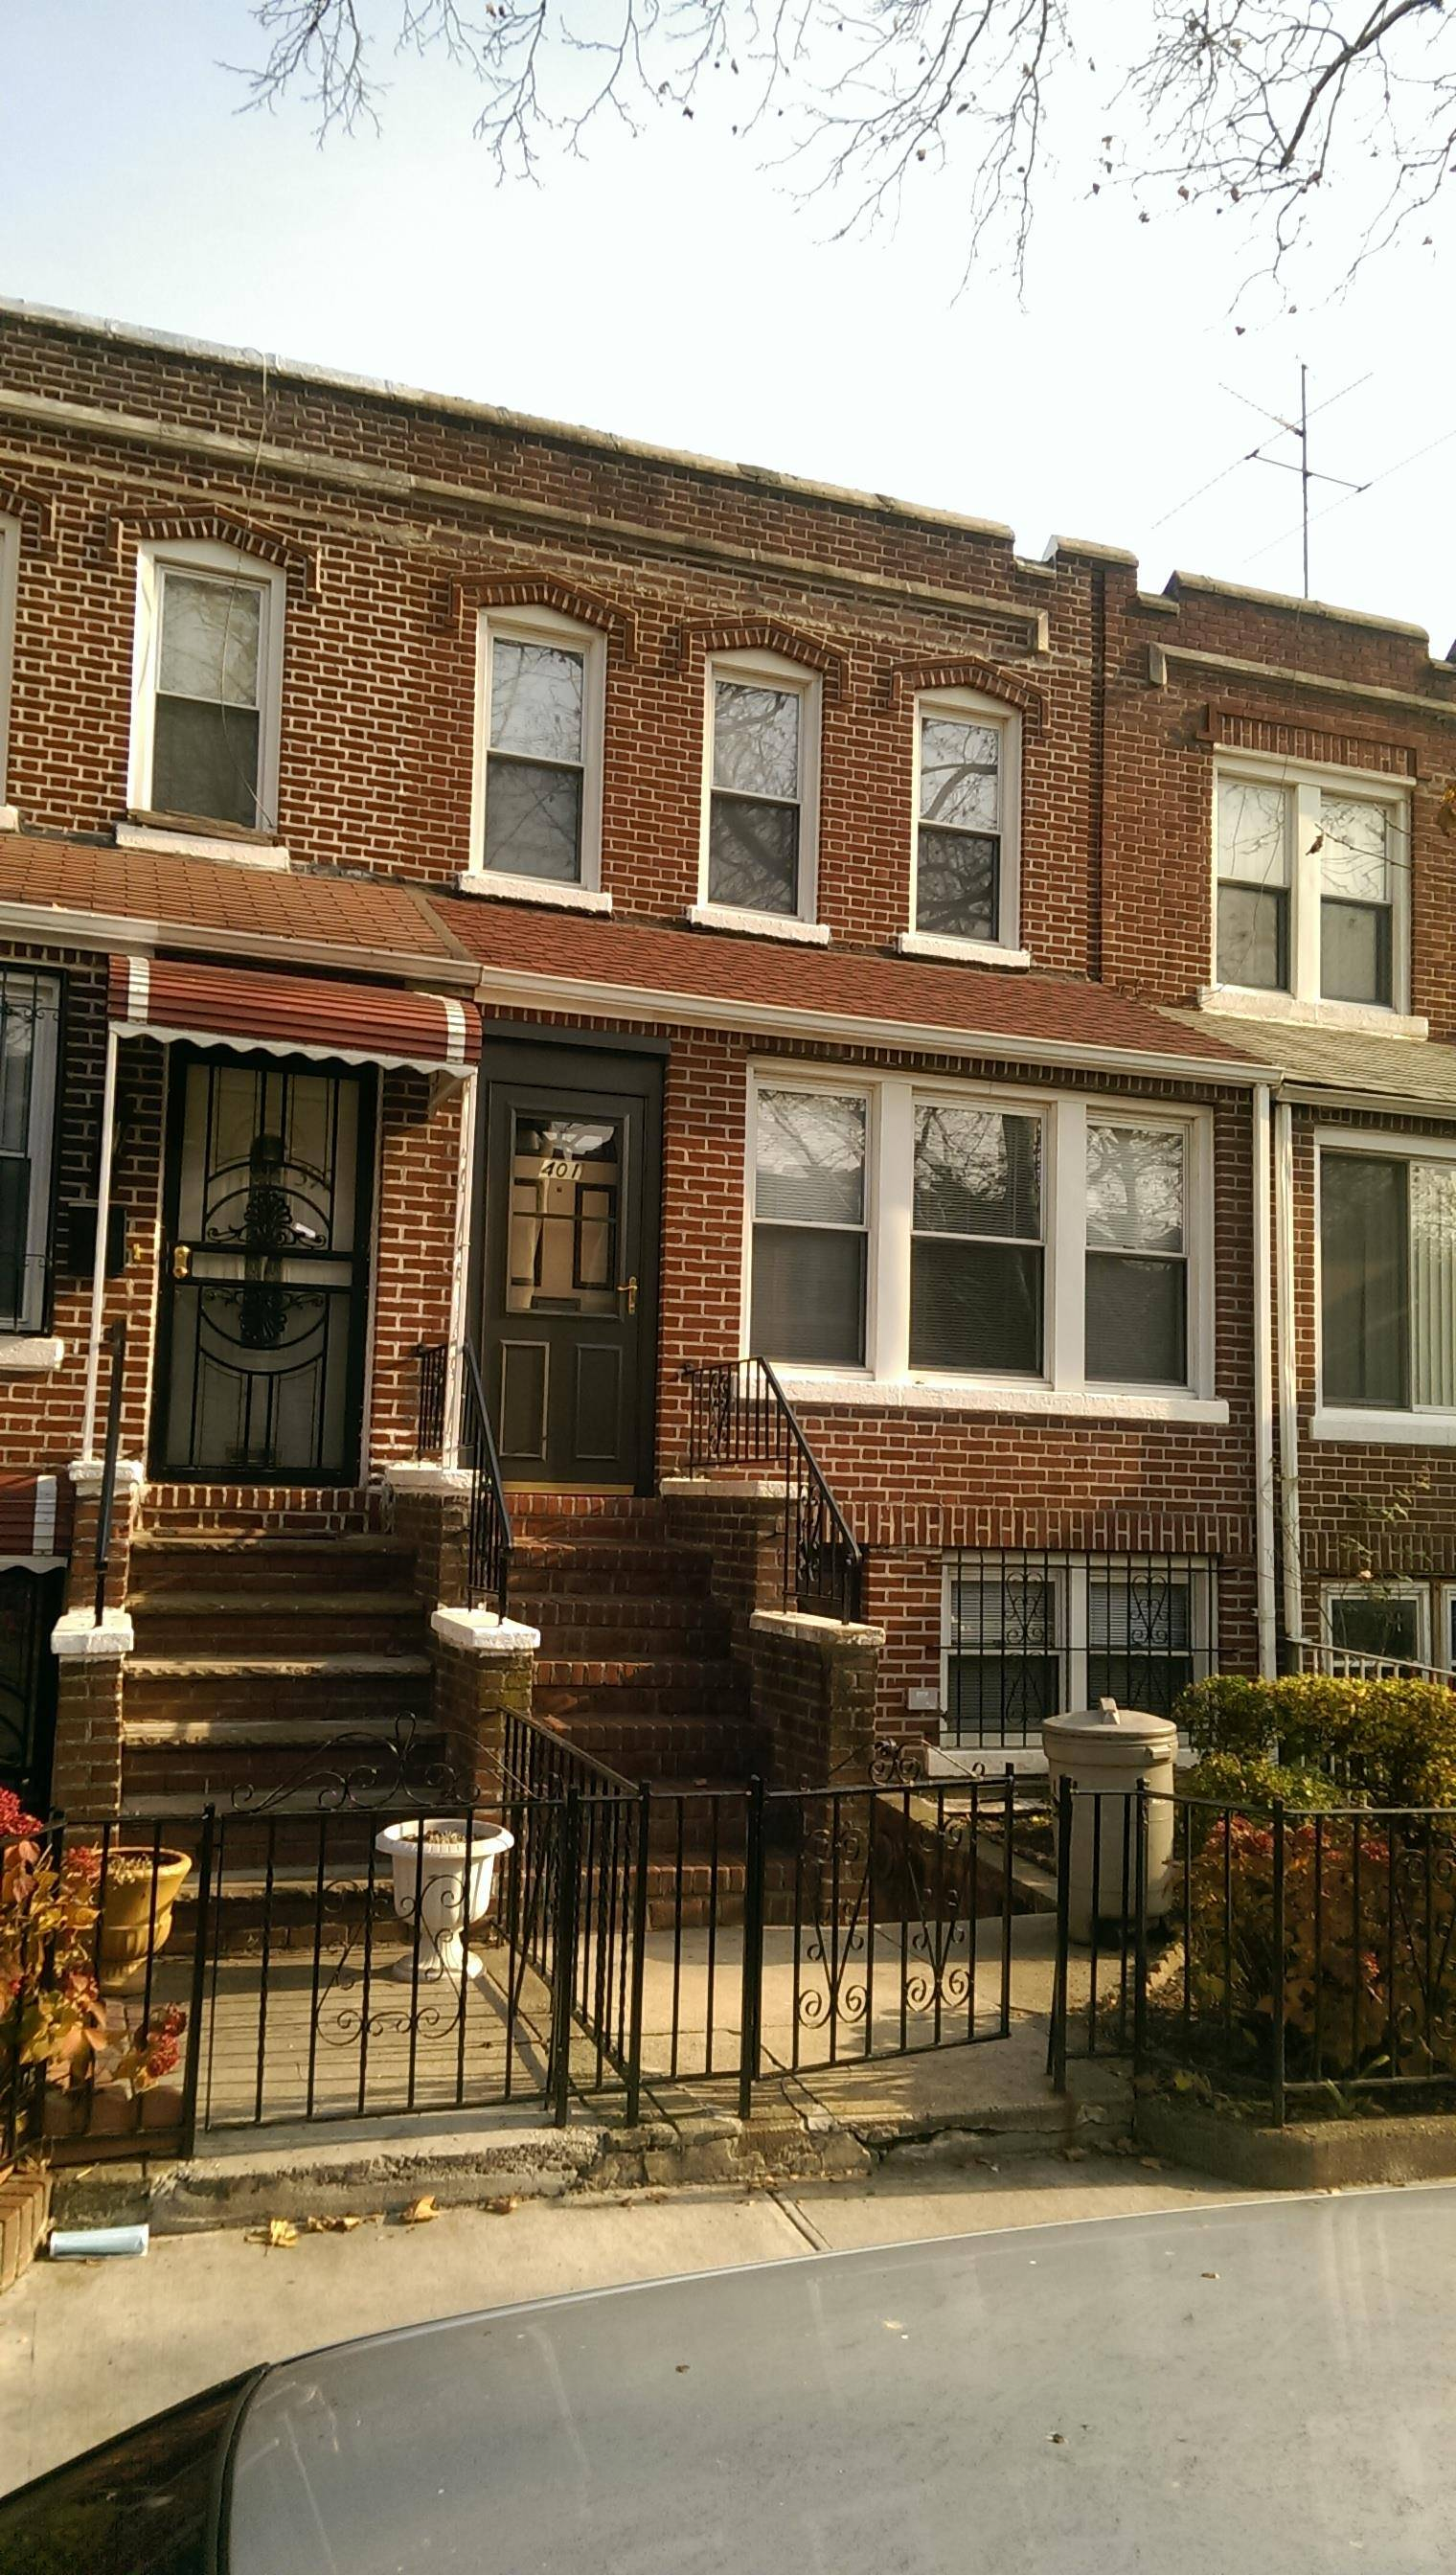 flatbush homes for sale, real estate agents selling flatbush brooklyn homes